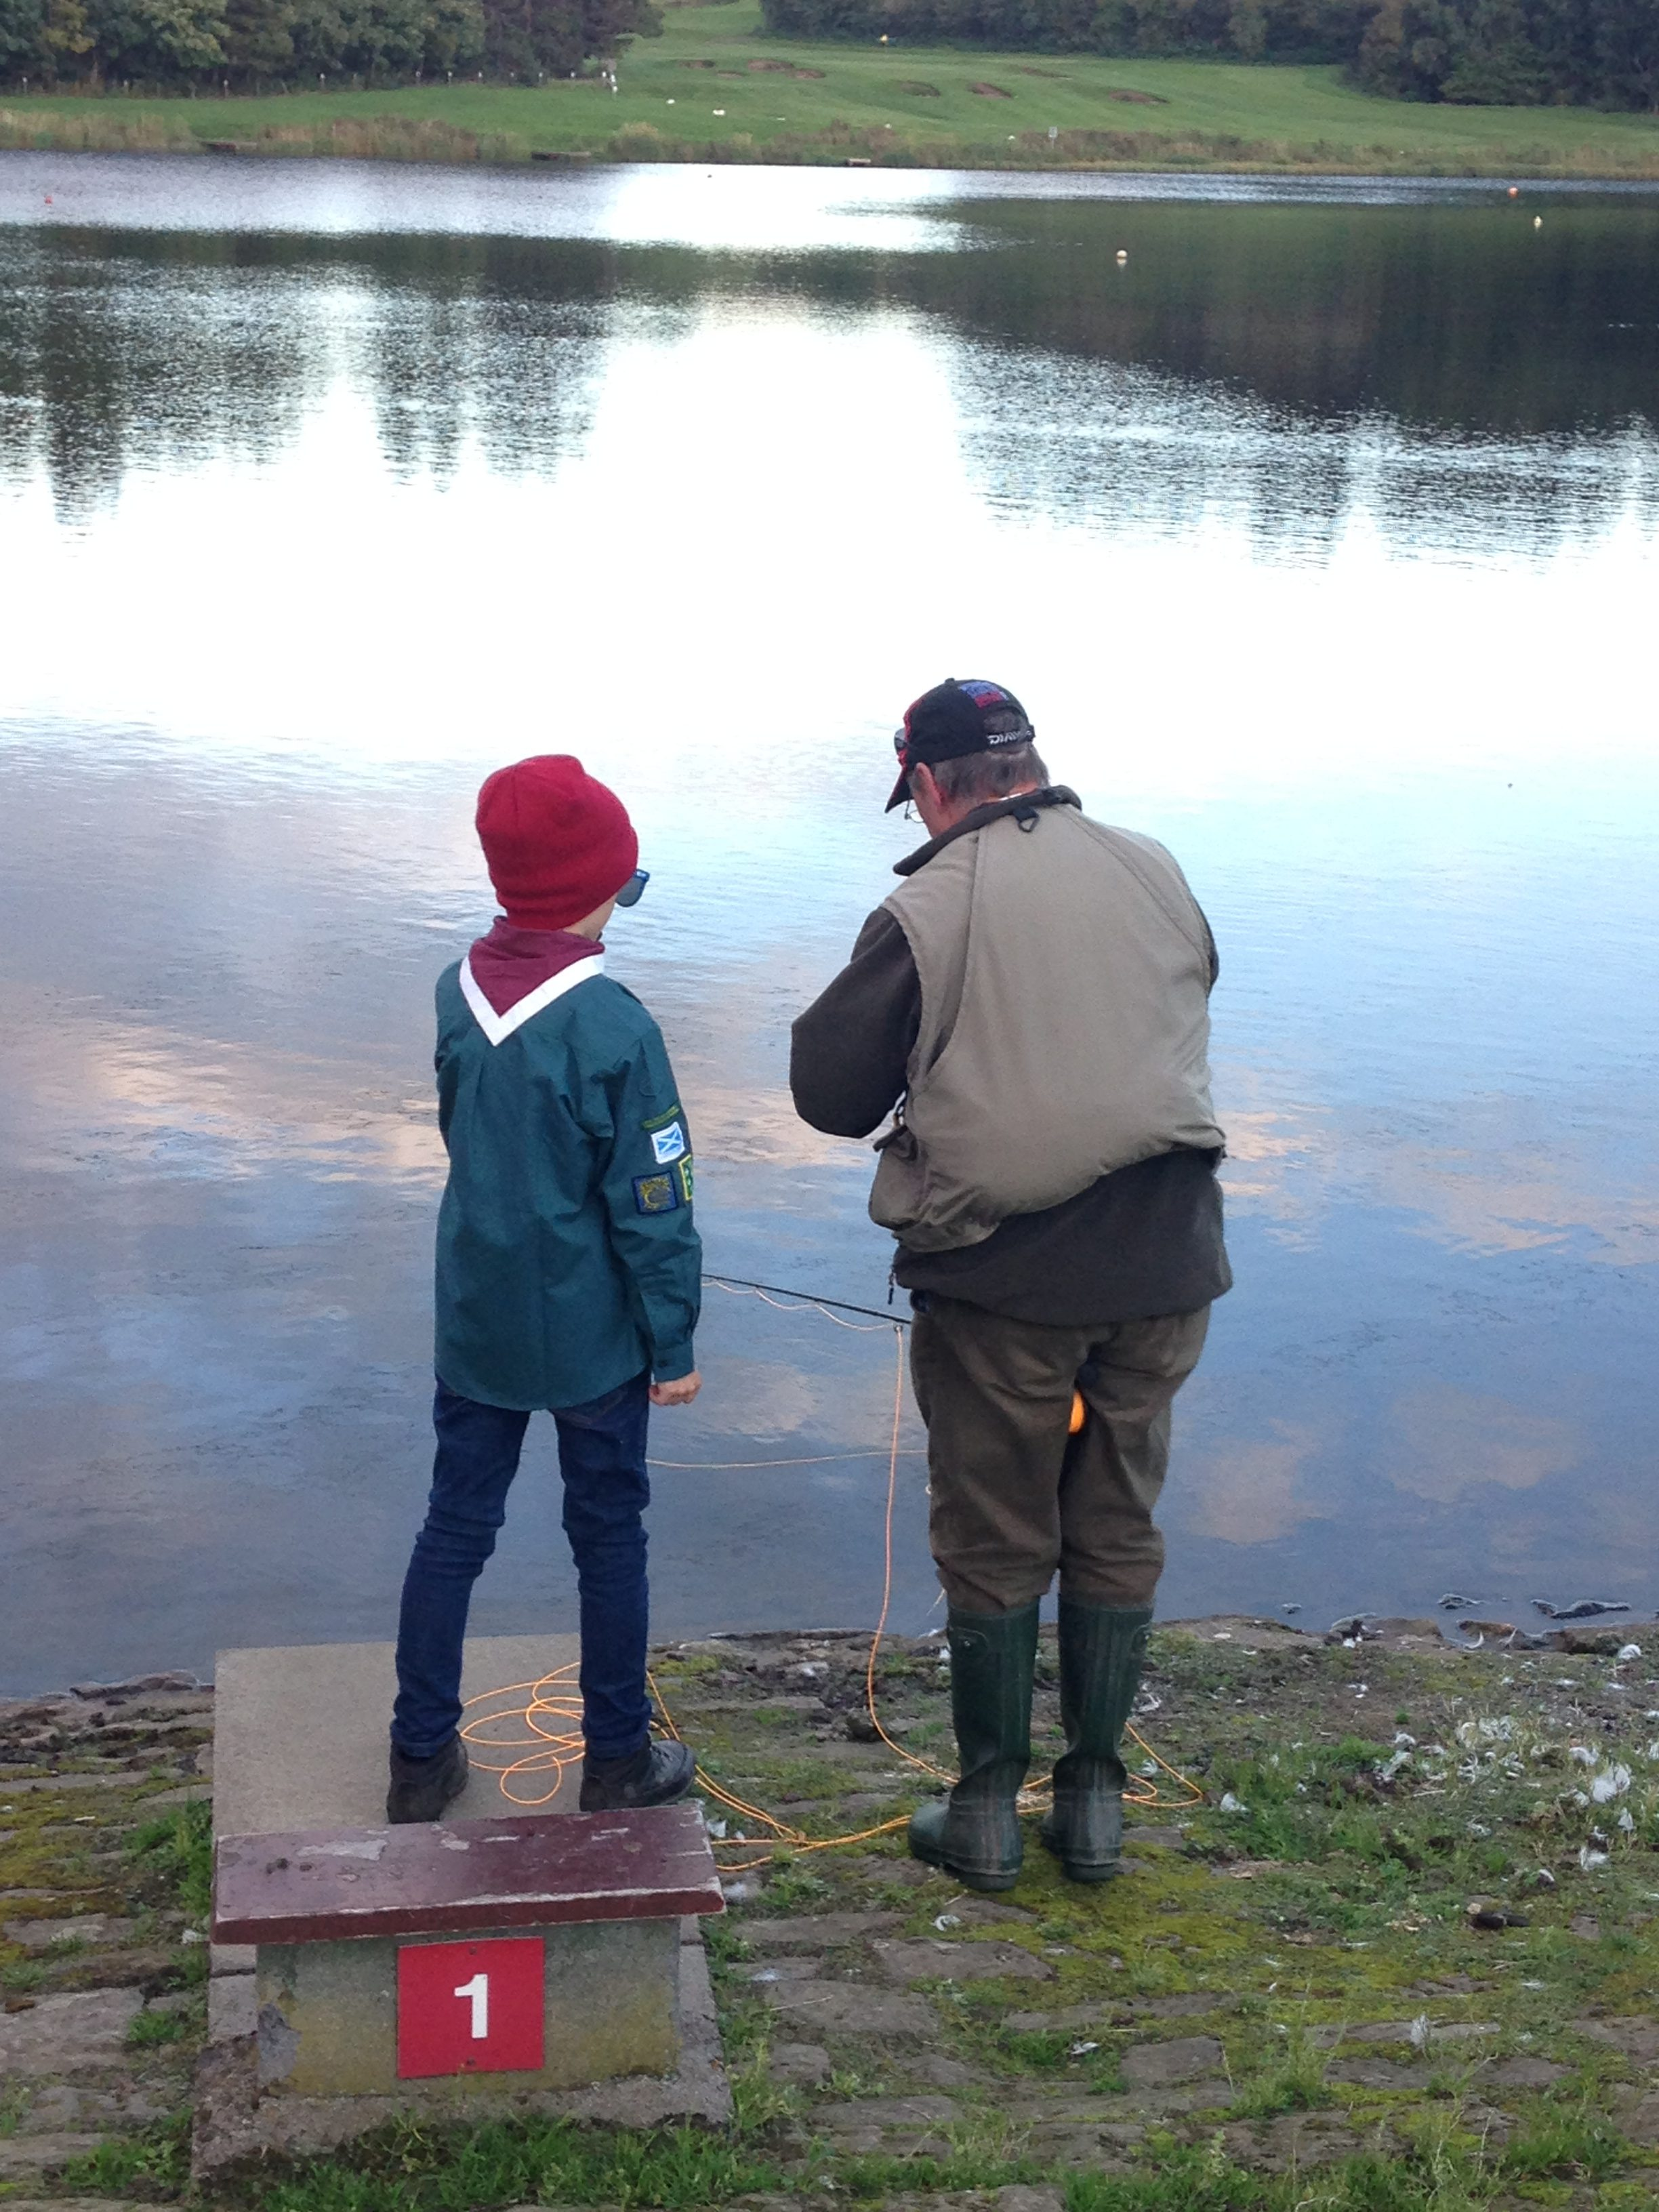 Introducing Scouts to fishing